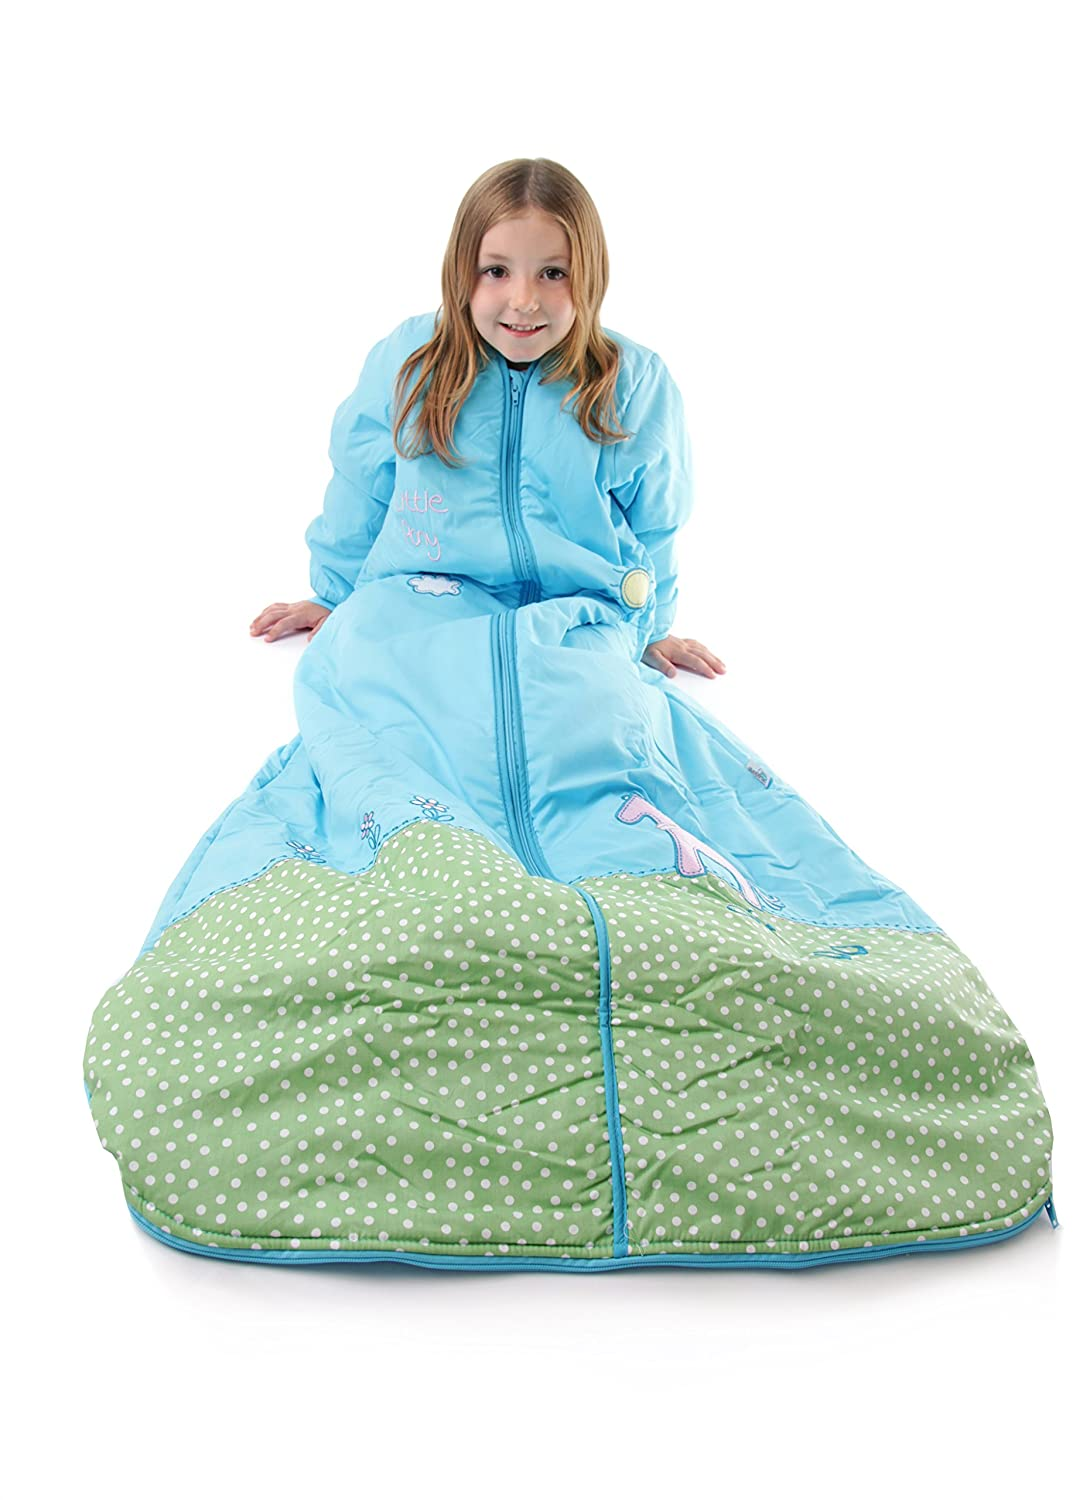 Amazon.com: Slumbersafe Winter Toddler Sleeping Bag Long Sleeves 3.5 Tog - Pony, 18-36 months/LARGE: Baby